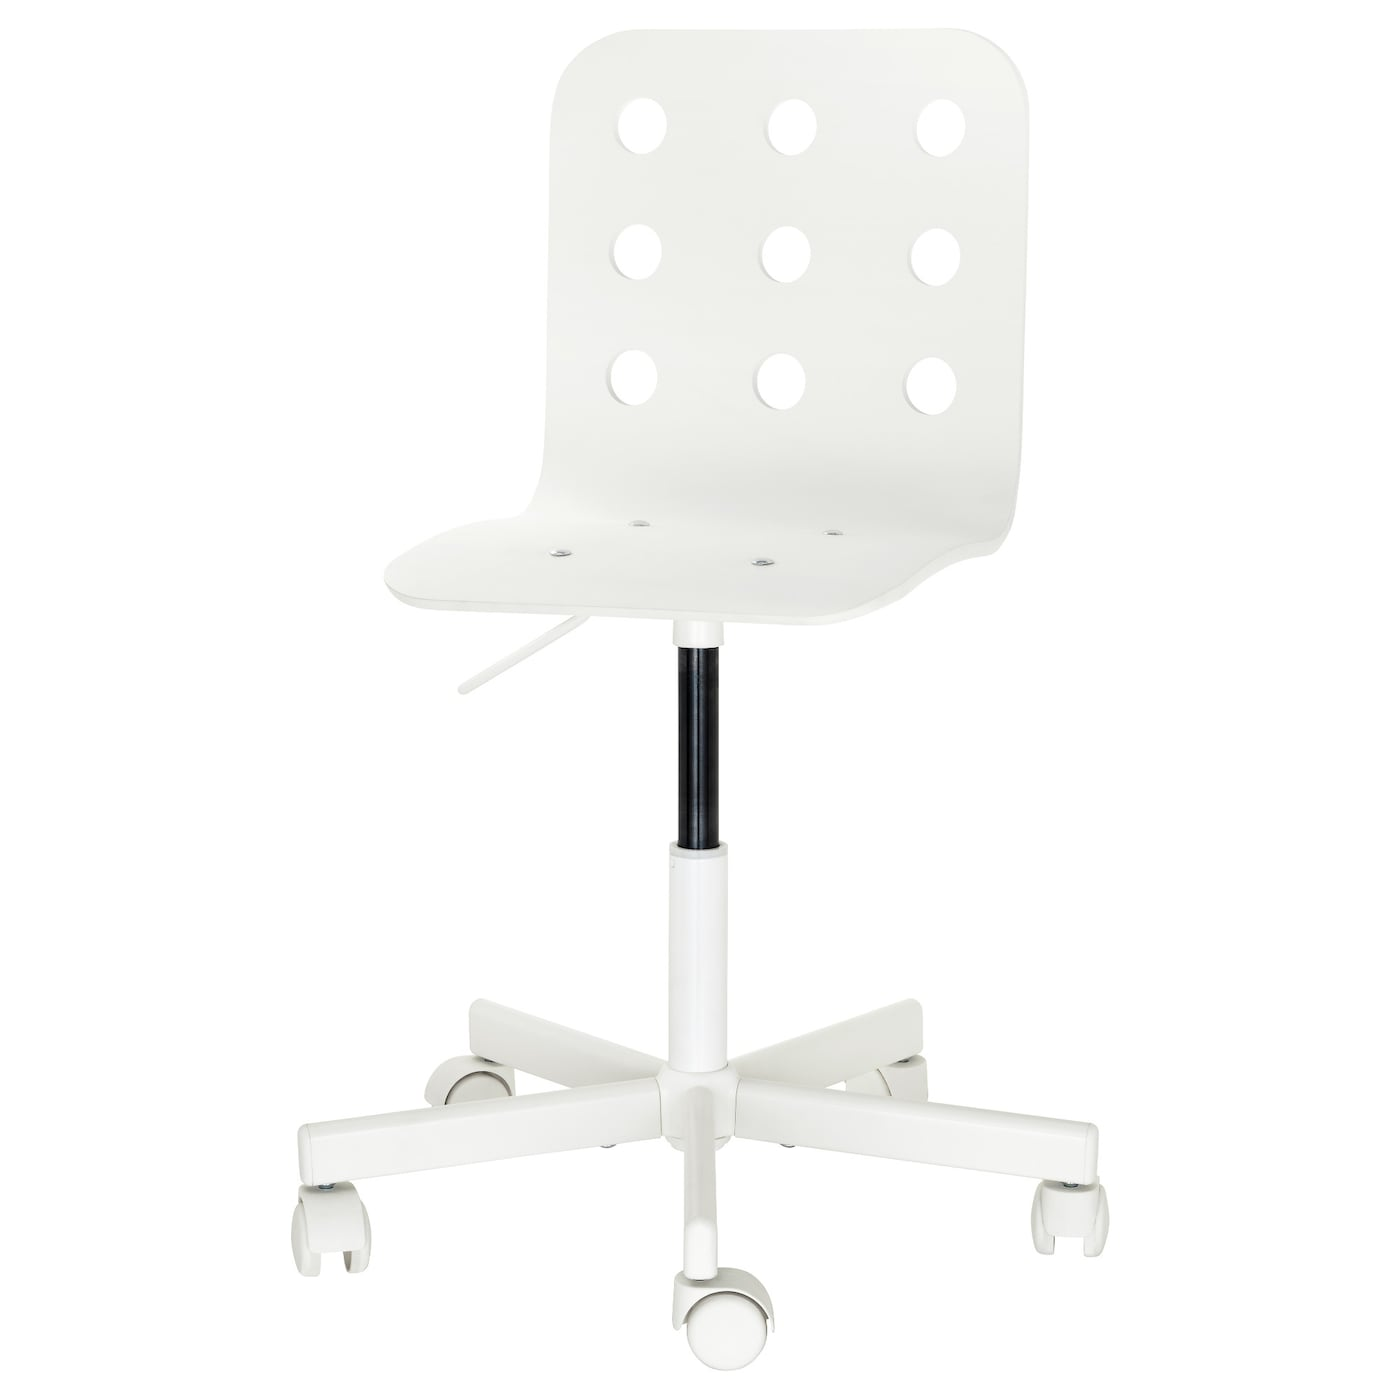 Jules children 39 s desk chair white ikea - Ikea childrens desk and chair set ...